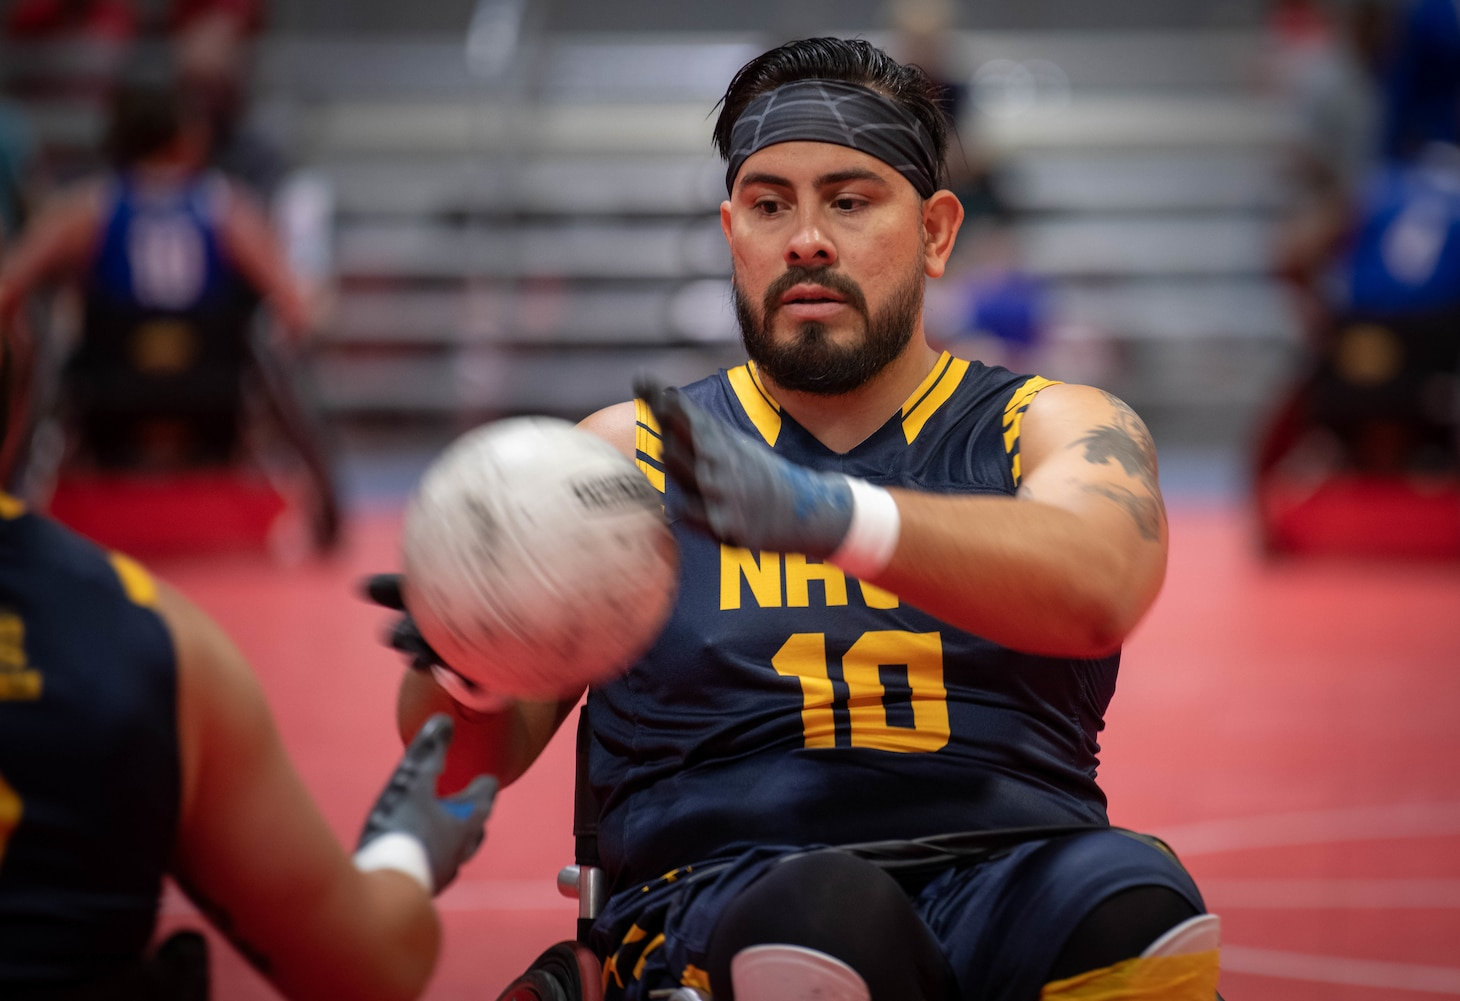 Emmanuel Gonzalez, a Team Navy Wounded Warrior, passes the ball during the 2019 DoD Warrior Games wheelchair rugby game.